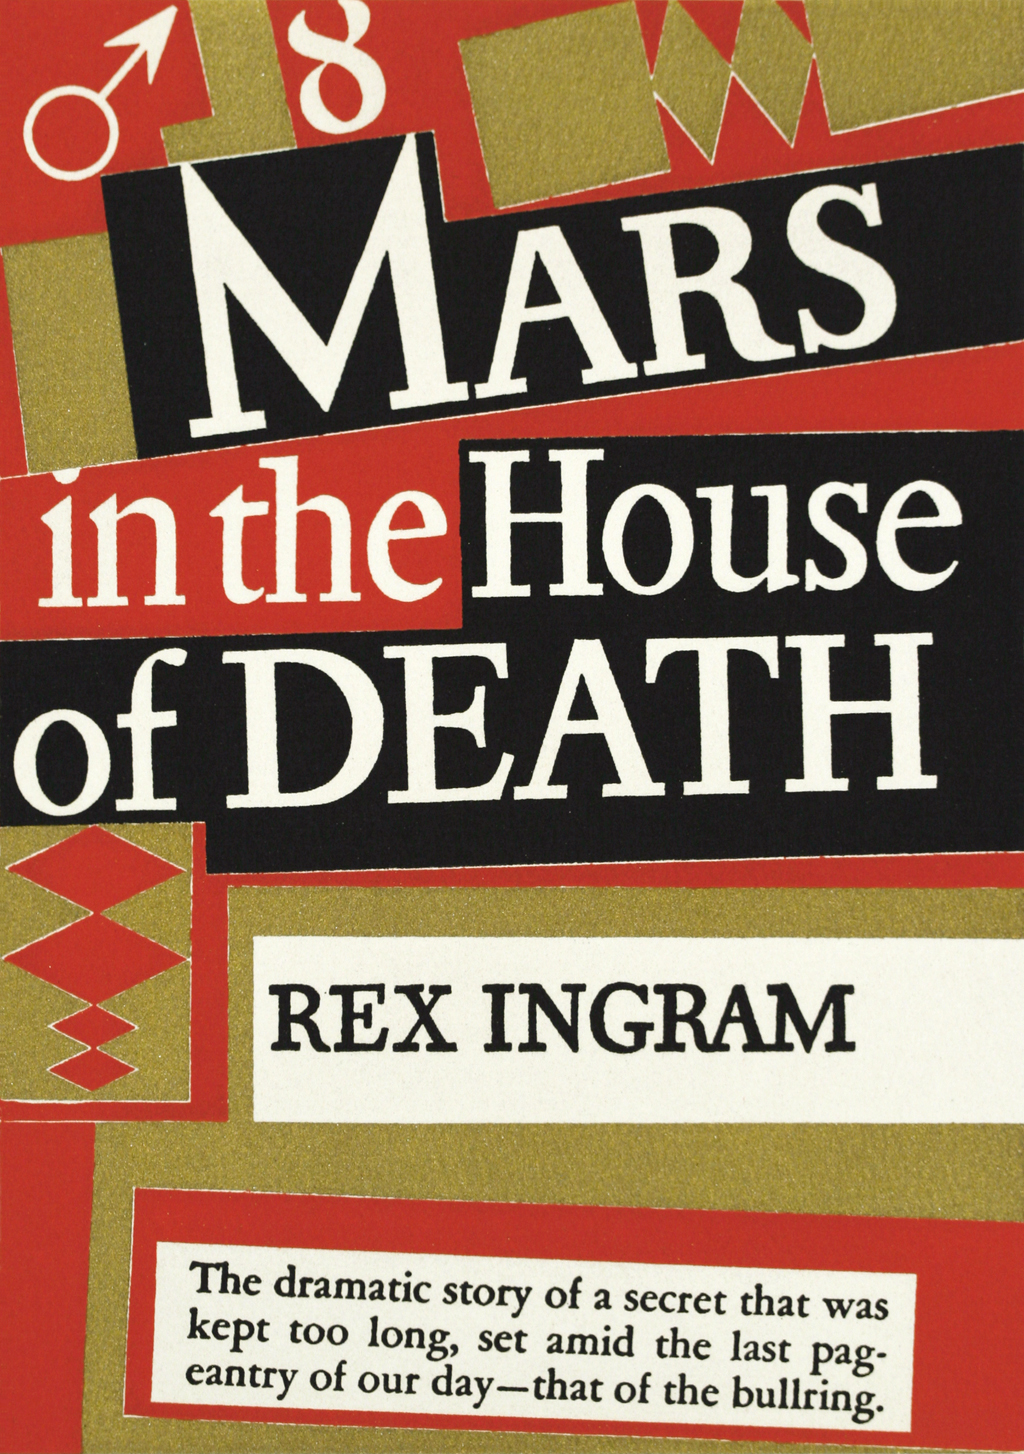 Jacket for Mars in the House of Death by Rex Ingram (New York: Alfred A. Knopf, 1939). Design by W.A. Dwiggins.